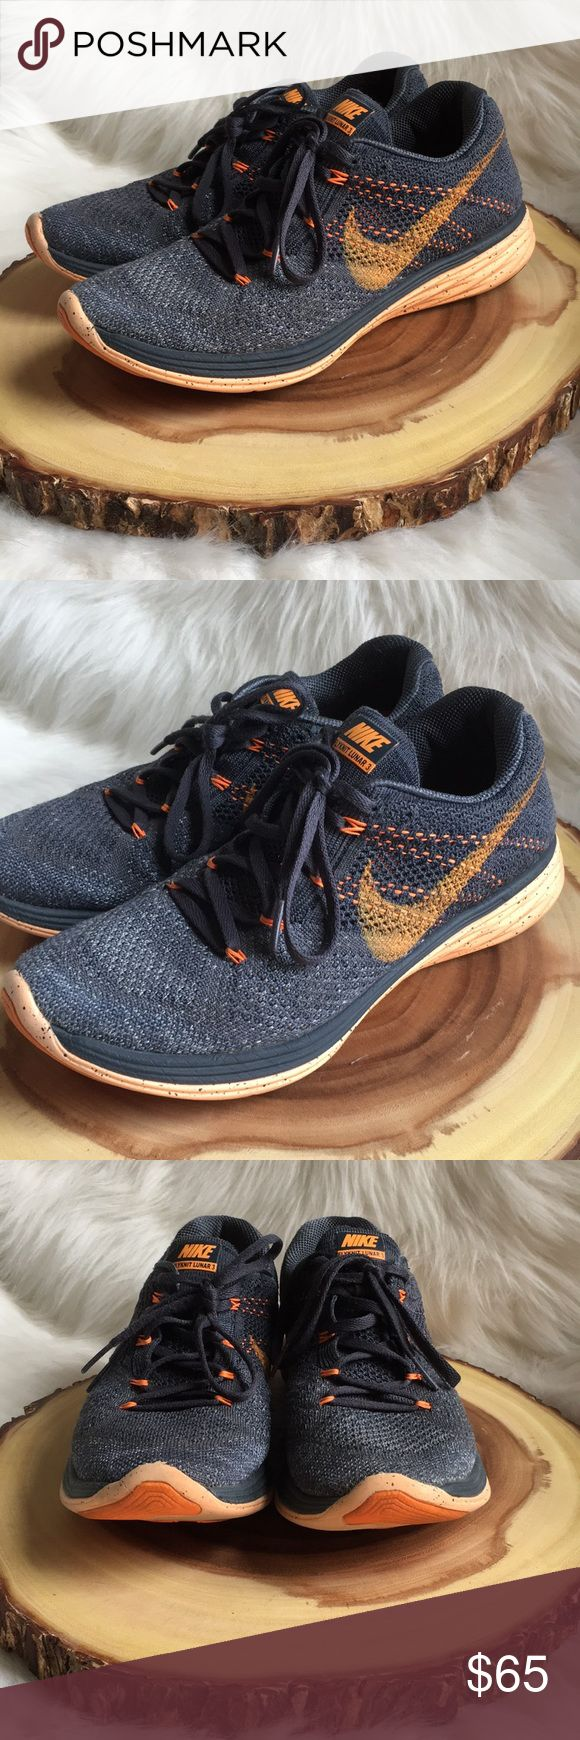 Nike flyknit lunar 3 sneakers Awesome running sneakers. Great used condition. Extremely comfortable and supportive sneaks. Nike Shoes Sneakers